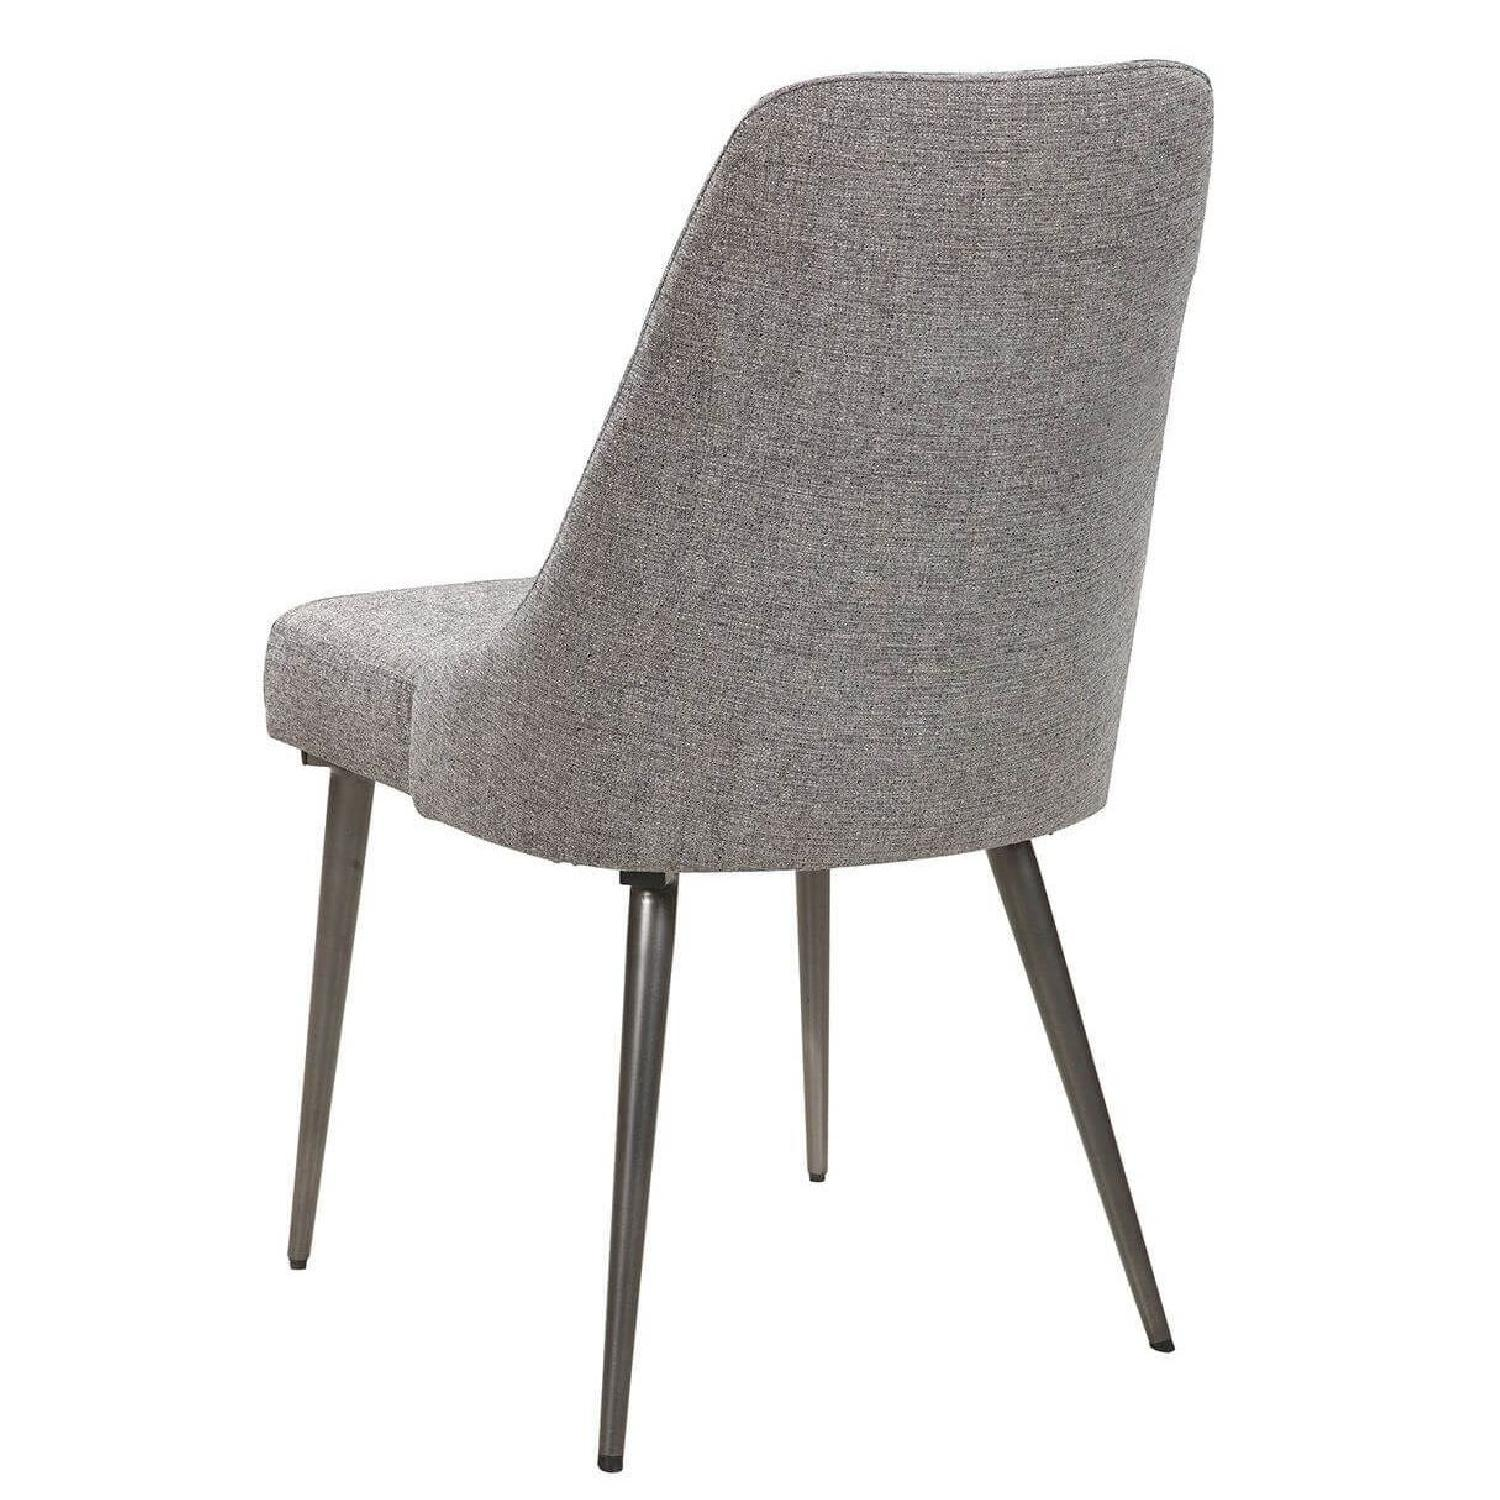 Dining Chair In Beige Fabric w/ Tufted Button & Nailheads - image-10